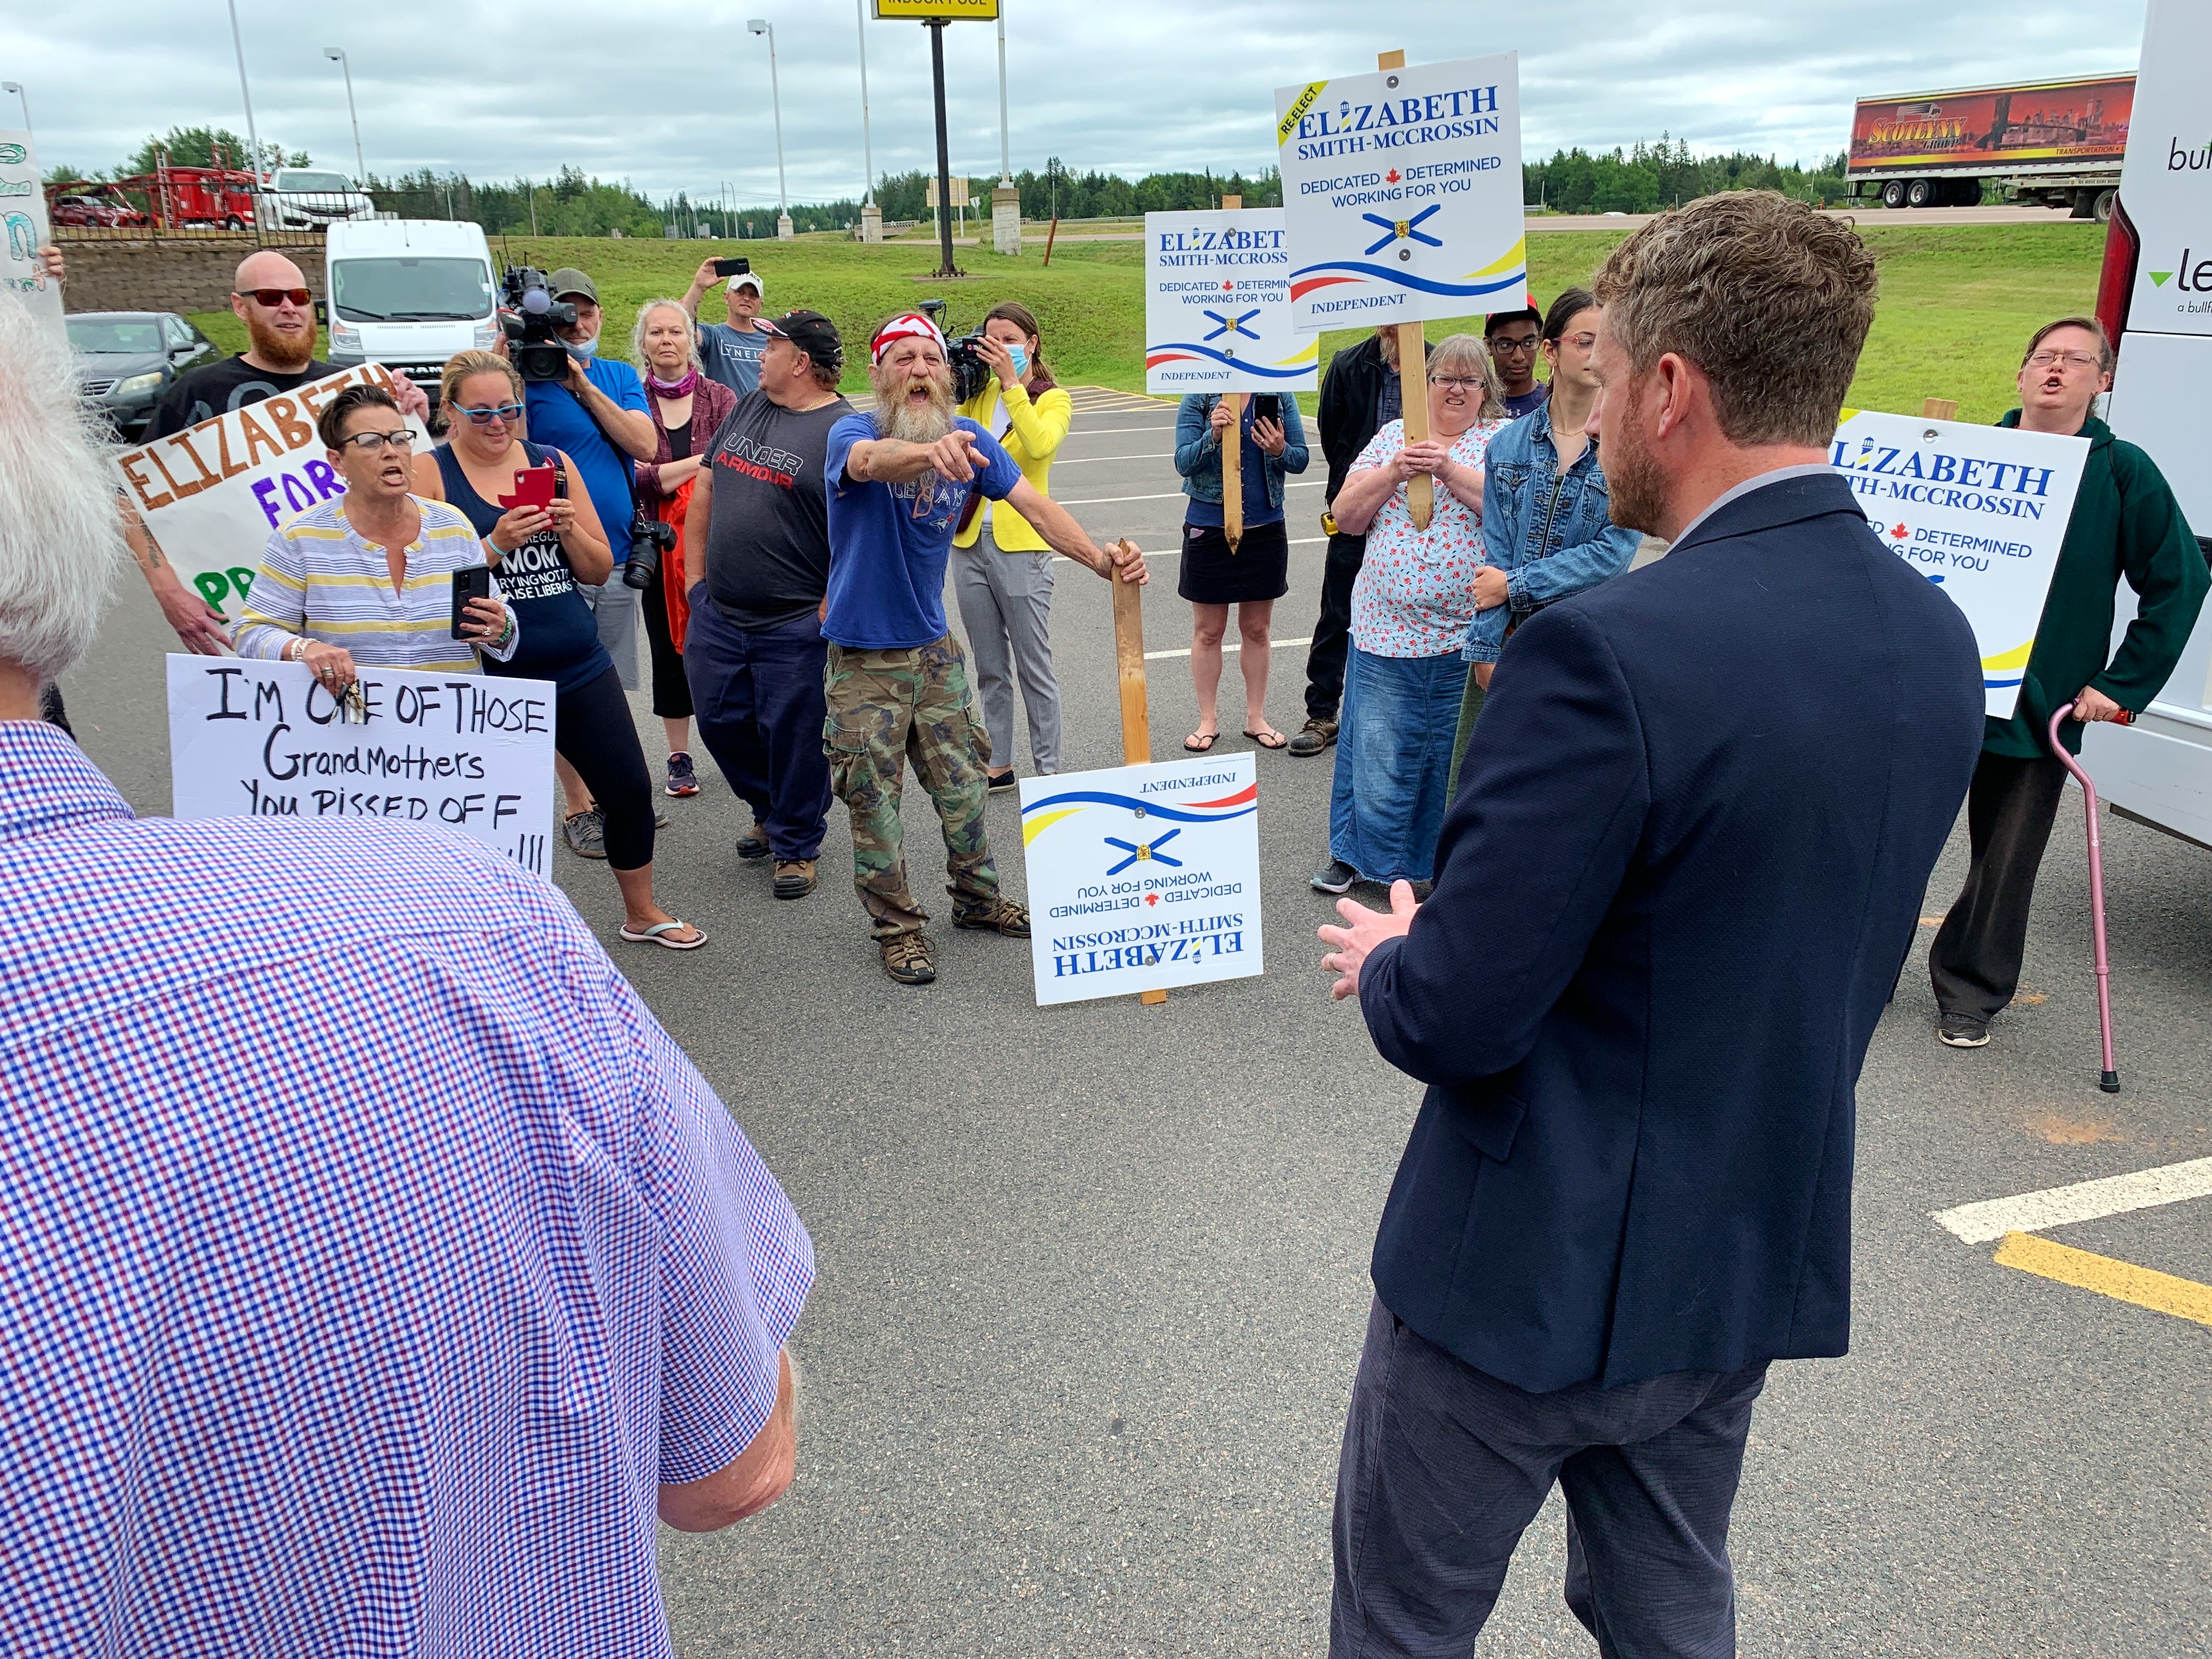 Nova Scotia Premier Iain Rankin is heckled during a visit to Amherst Tuesday during which he announced non-commercial Nova Scotia drivers will no longer have to pay the toll to use the Cobequid Pass after Oct. 1.